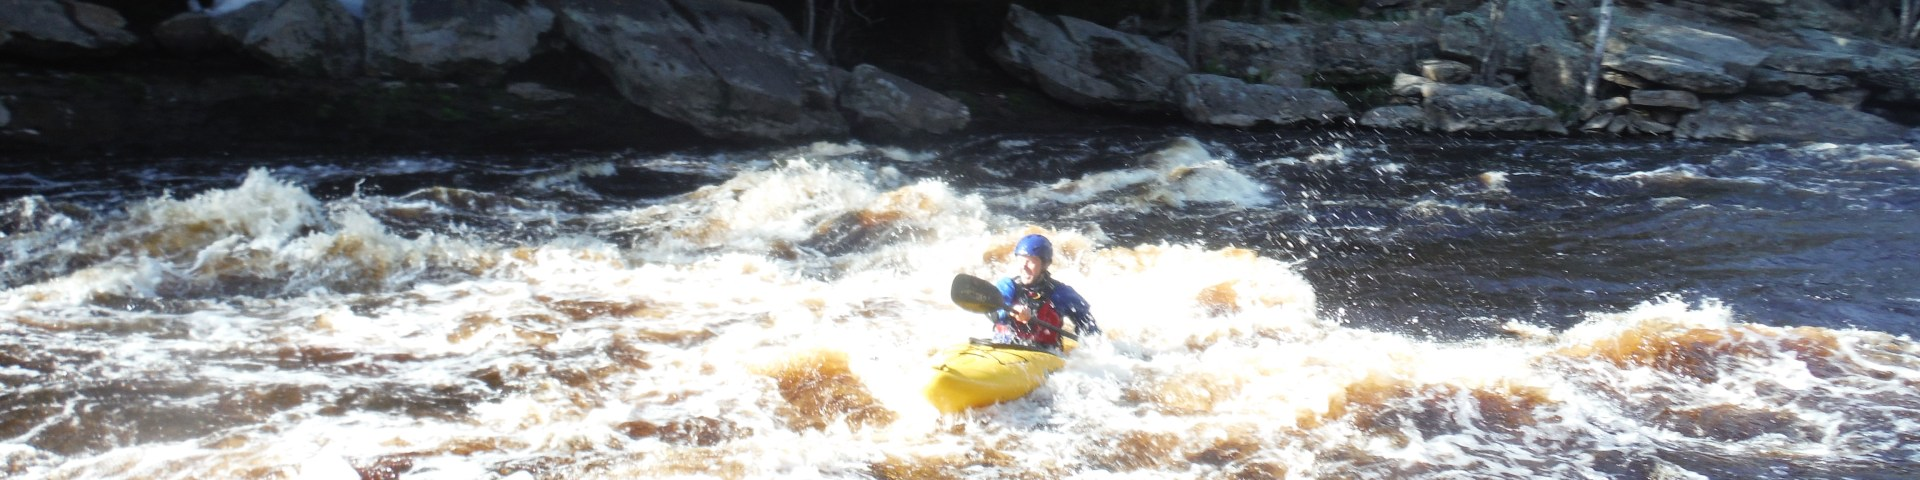 kettle river minnesota whitewater